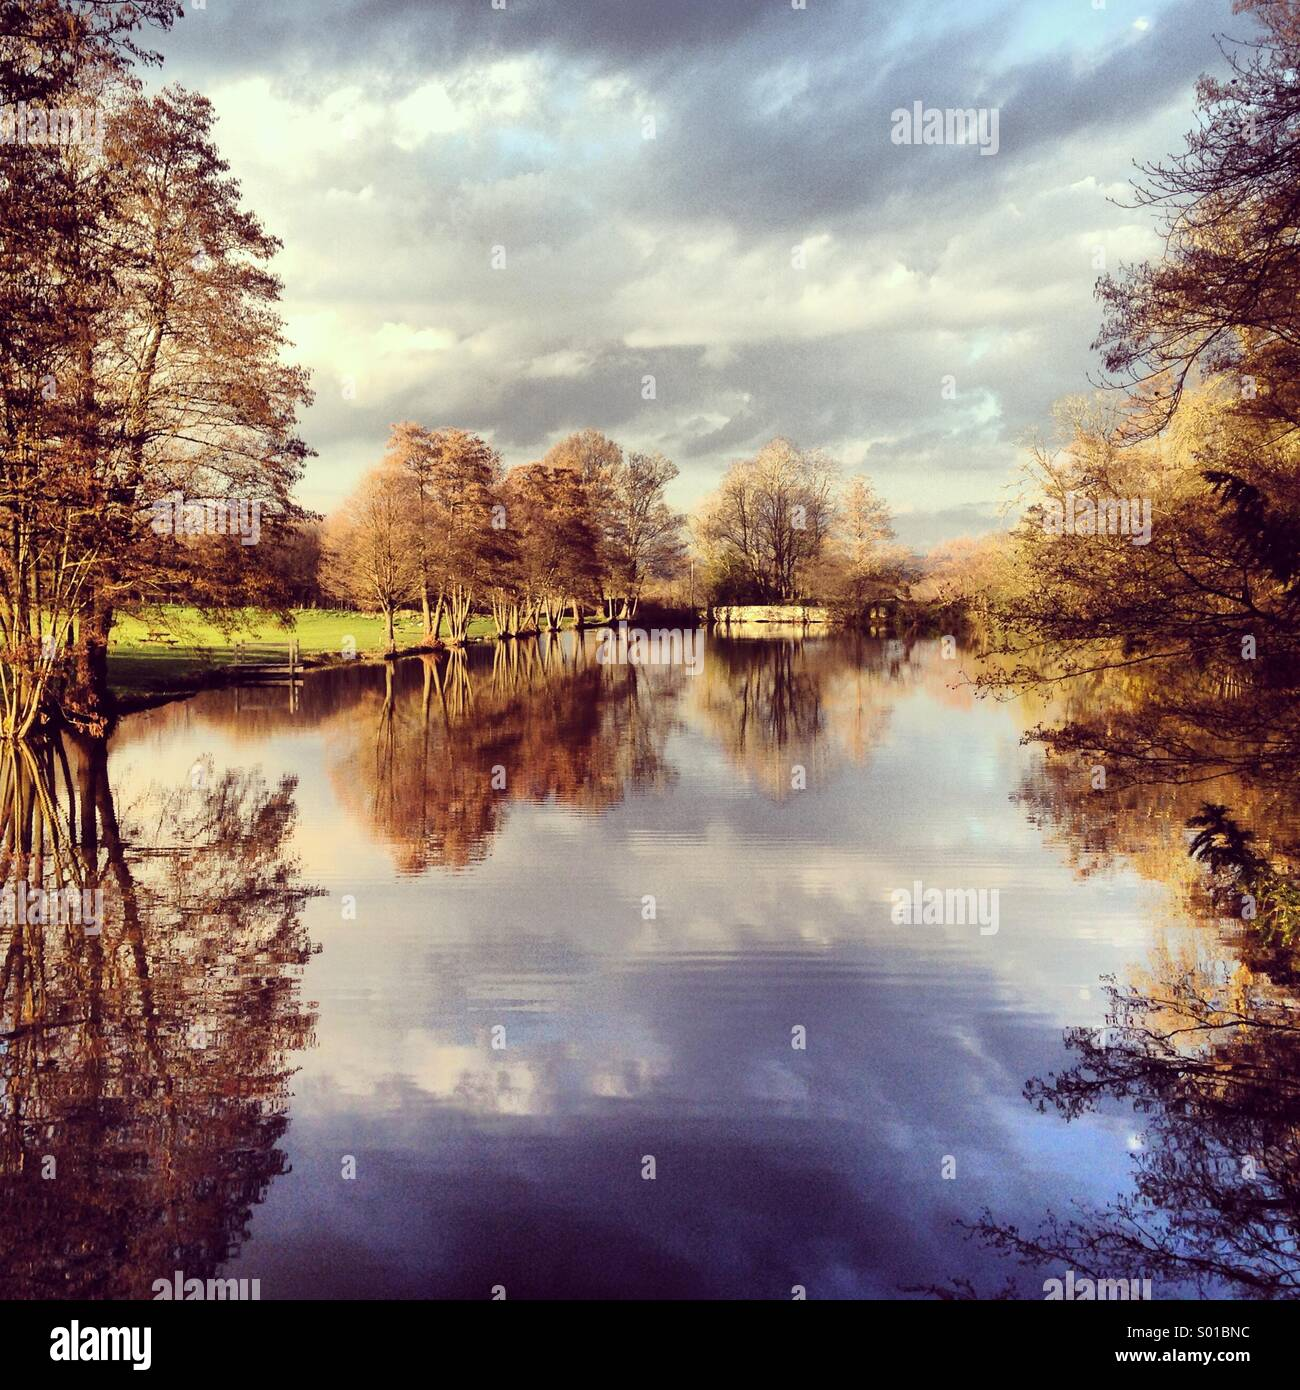 Lake with reflections - Stock Image